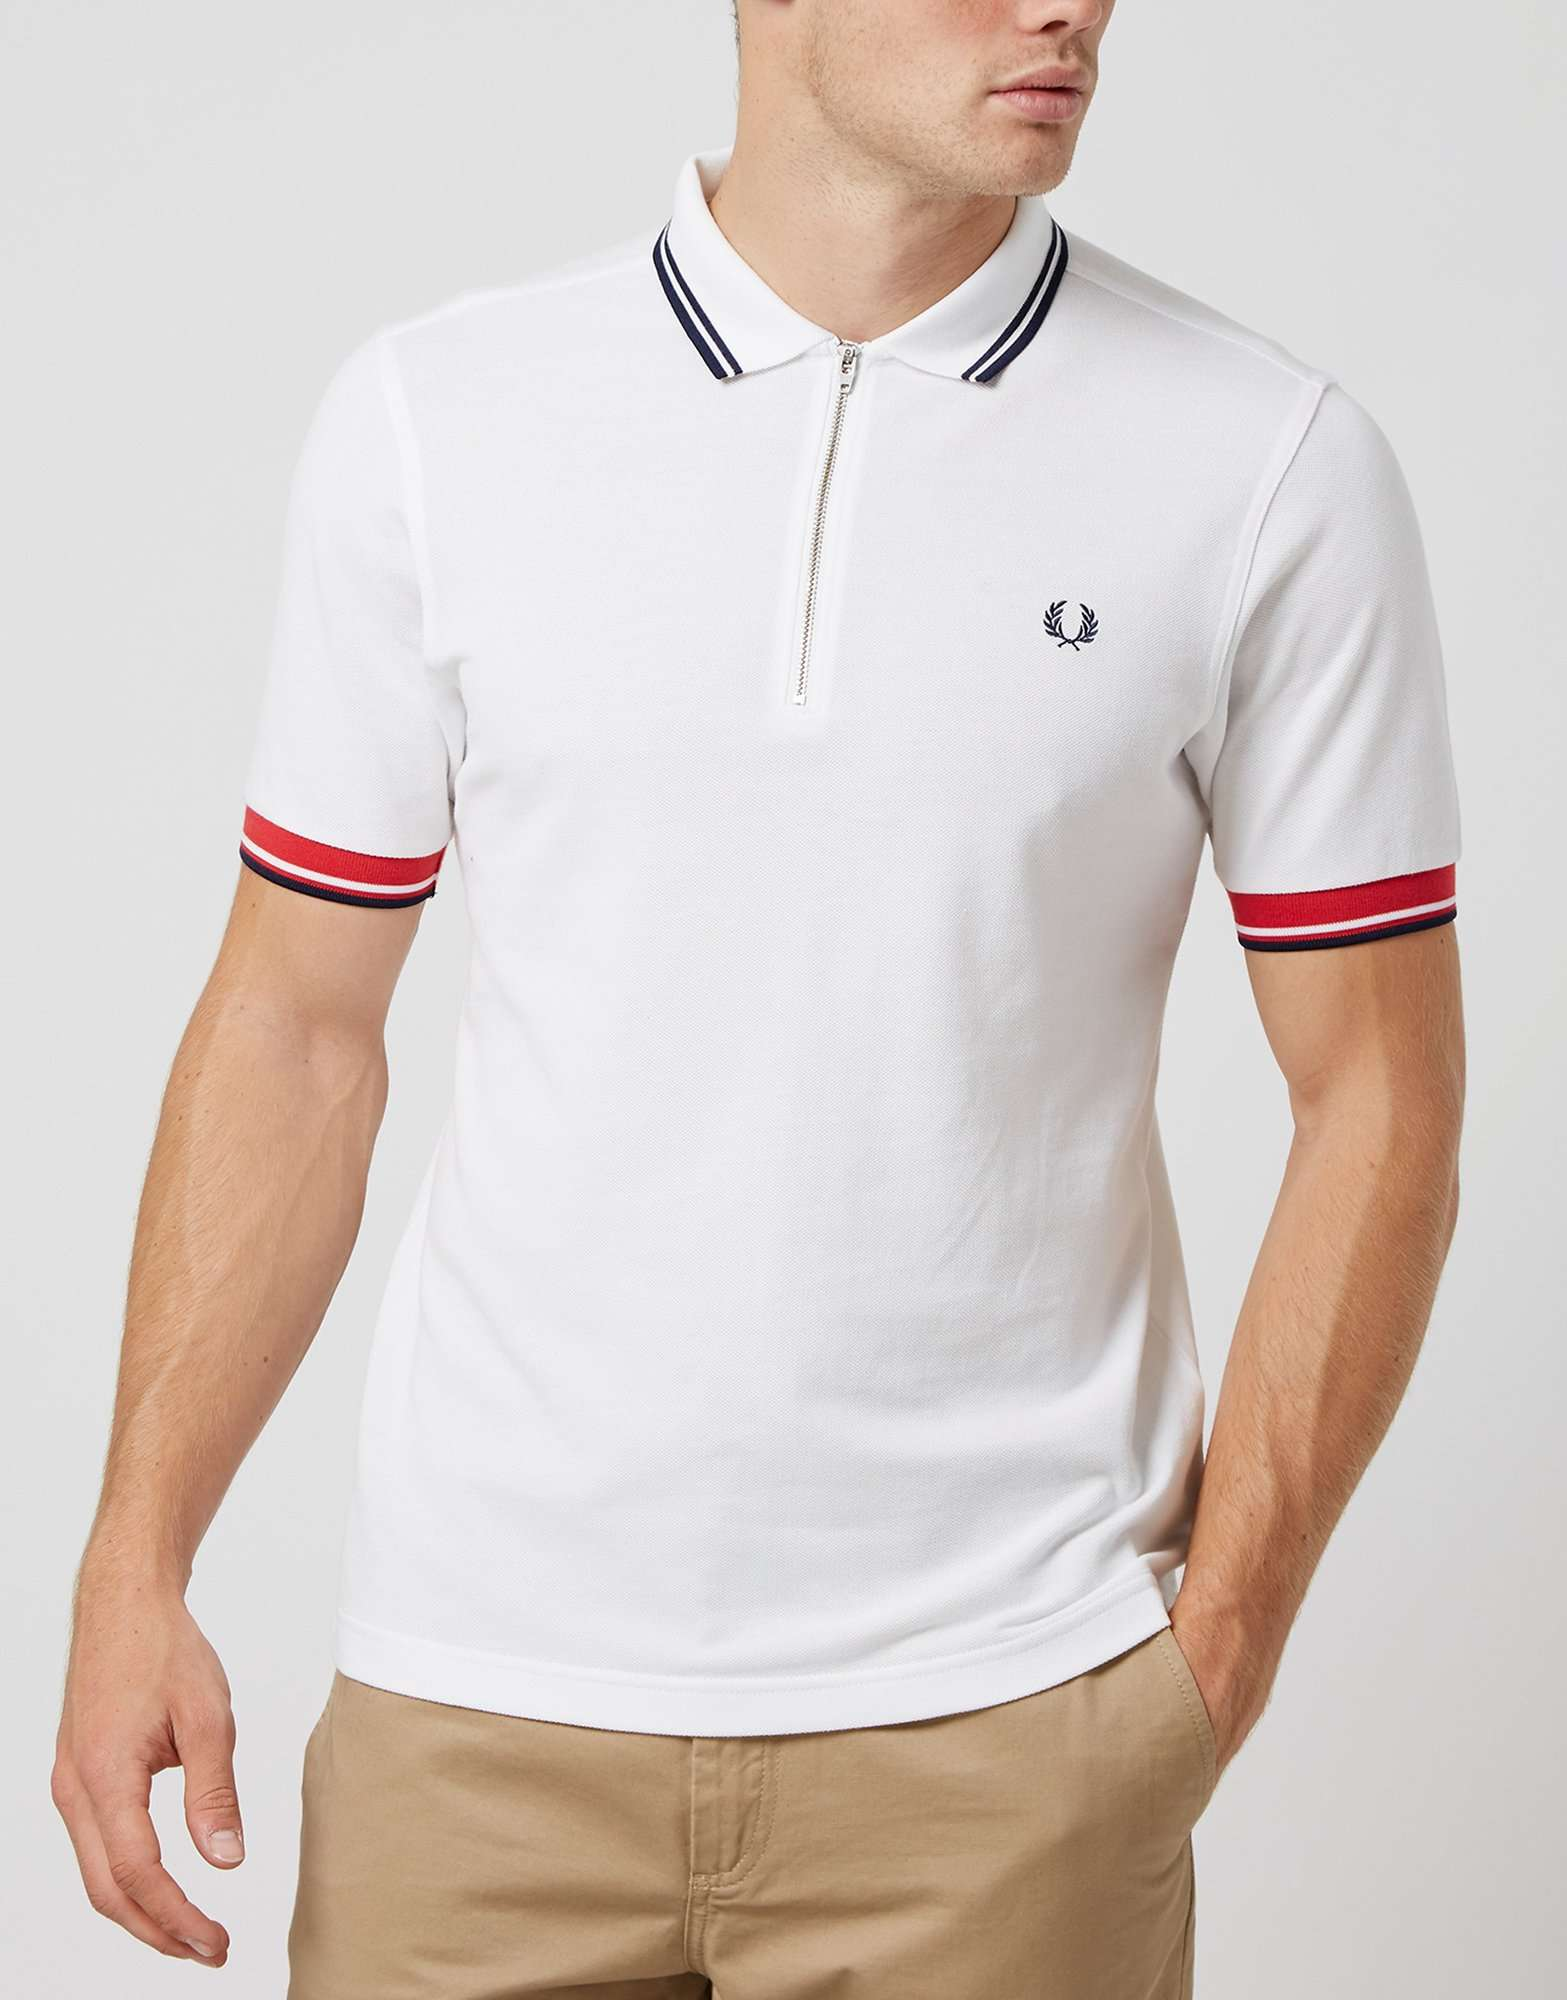 fred perry zip pique twin tipped polo shirt scotts menswear. Black Bedroom Furniture Sets. Home Design Ideas